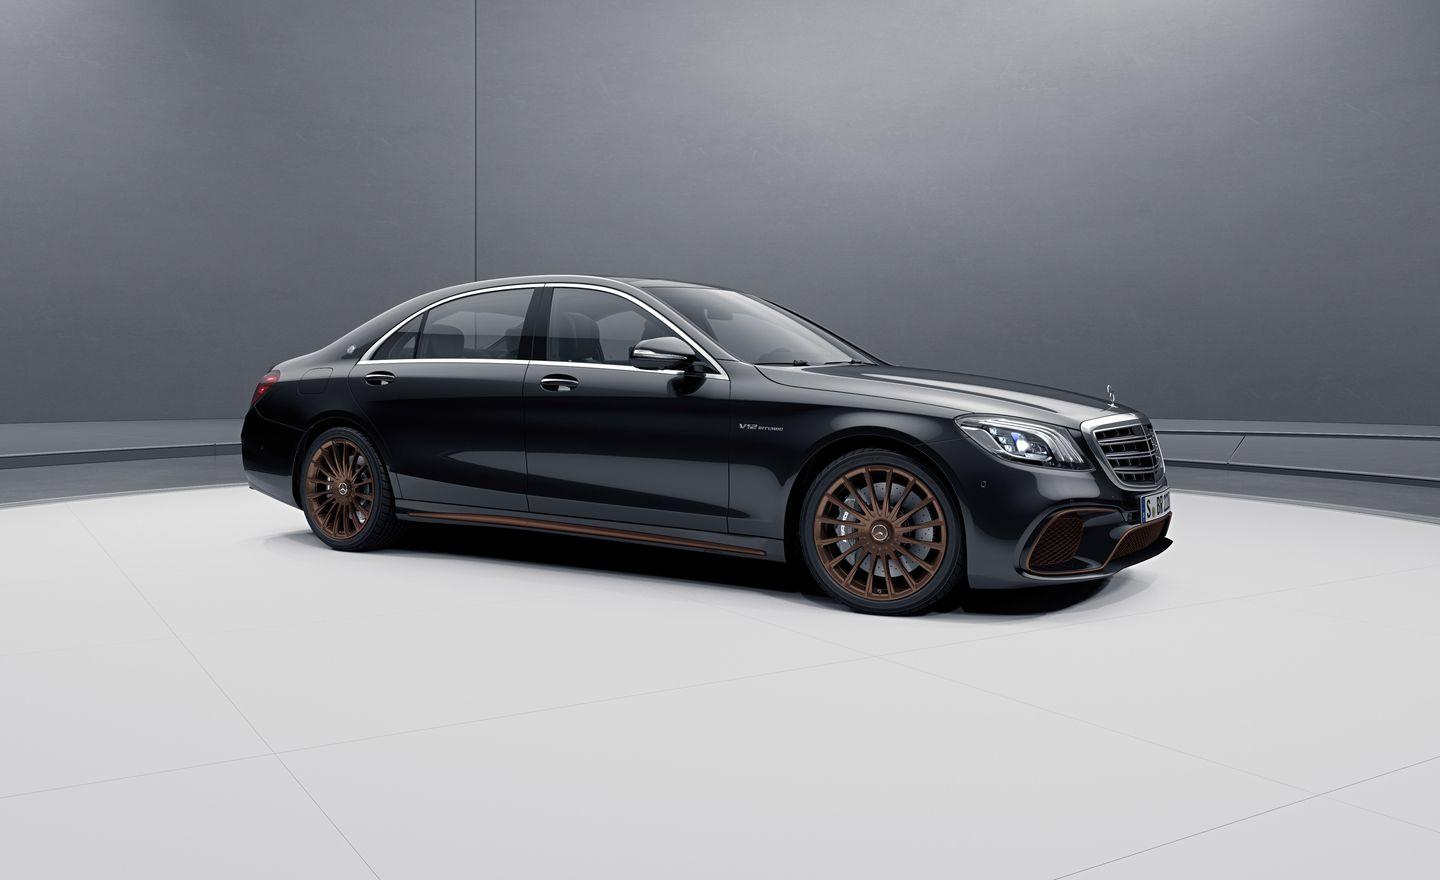 """<p>We reported last April that <a href=""""https://www.caranddriver.com/news/a19694834/mercedes-amg-to-drop-v-12-engines/"""" rel=""""nofollow noopener"""" target=""""_blank"""" data-ylk=""""slk:Mercedes would be dropping the silky-smooth V-12 engine"""" class=""""link rapid-noclick-resp"""">Mercedes would be dropping the silky-smooth V-12 engine</a> from the S-class lineup once a redesigned model hit the market.</p>"""